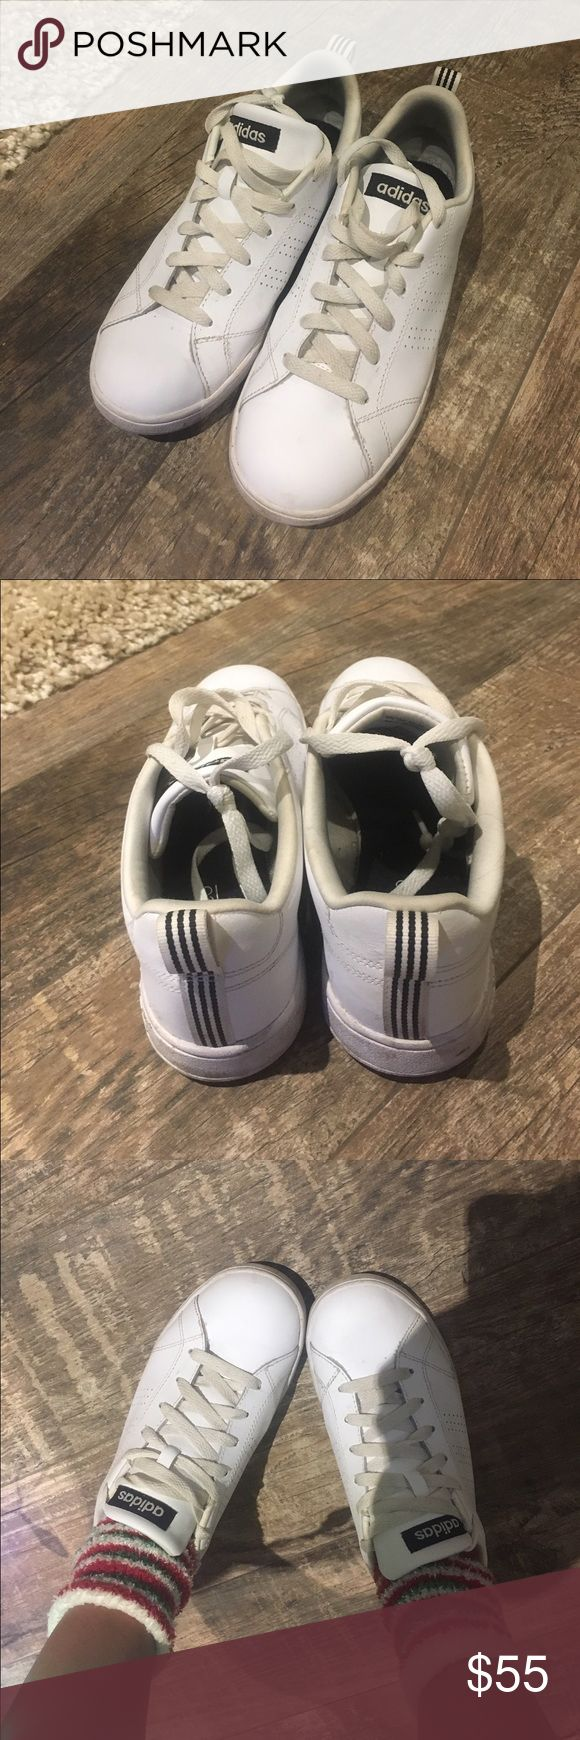 Adidas originals all white Size 7 true to size. Good condition only flaw is that they have never been cleaned. Worn a few times. Super comfy! Have too many pairs so offer up! Bought from finish line store in Charlotte Southpark mall. Use offer button. 10% OFF ASK TO CHANGE PRICE TO PURCHASE Adidas Shoes Sneakers